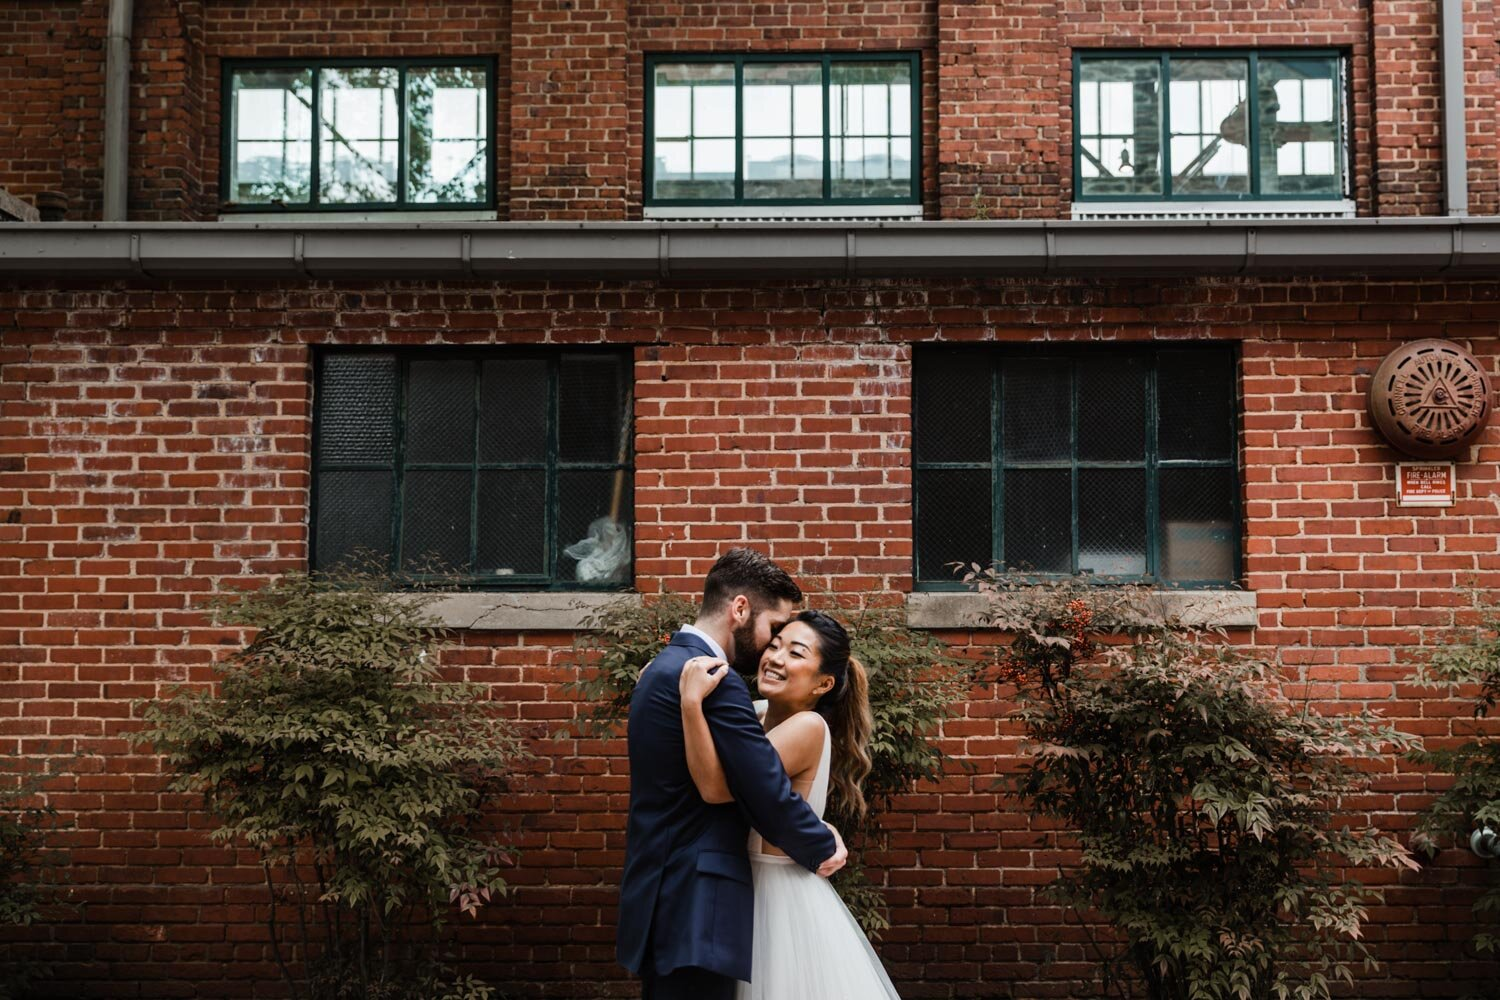 Mt Washington Mill Dye House industrial Baltimore wedding by Barbara O Photography-12.jpg